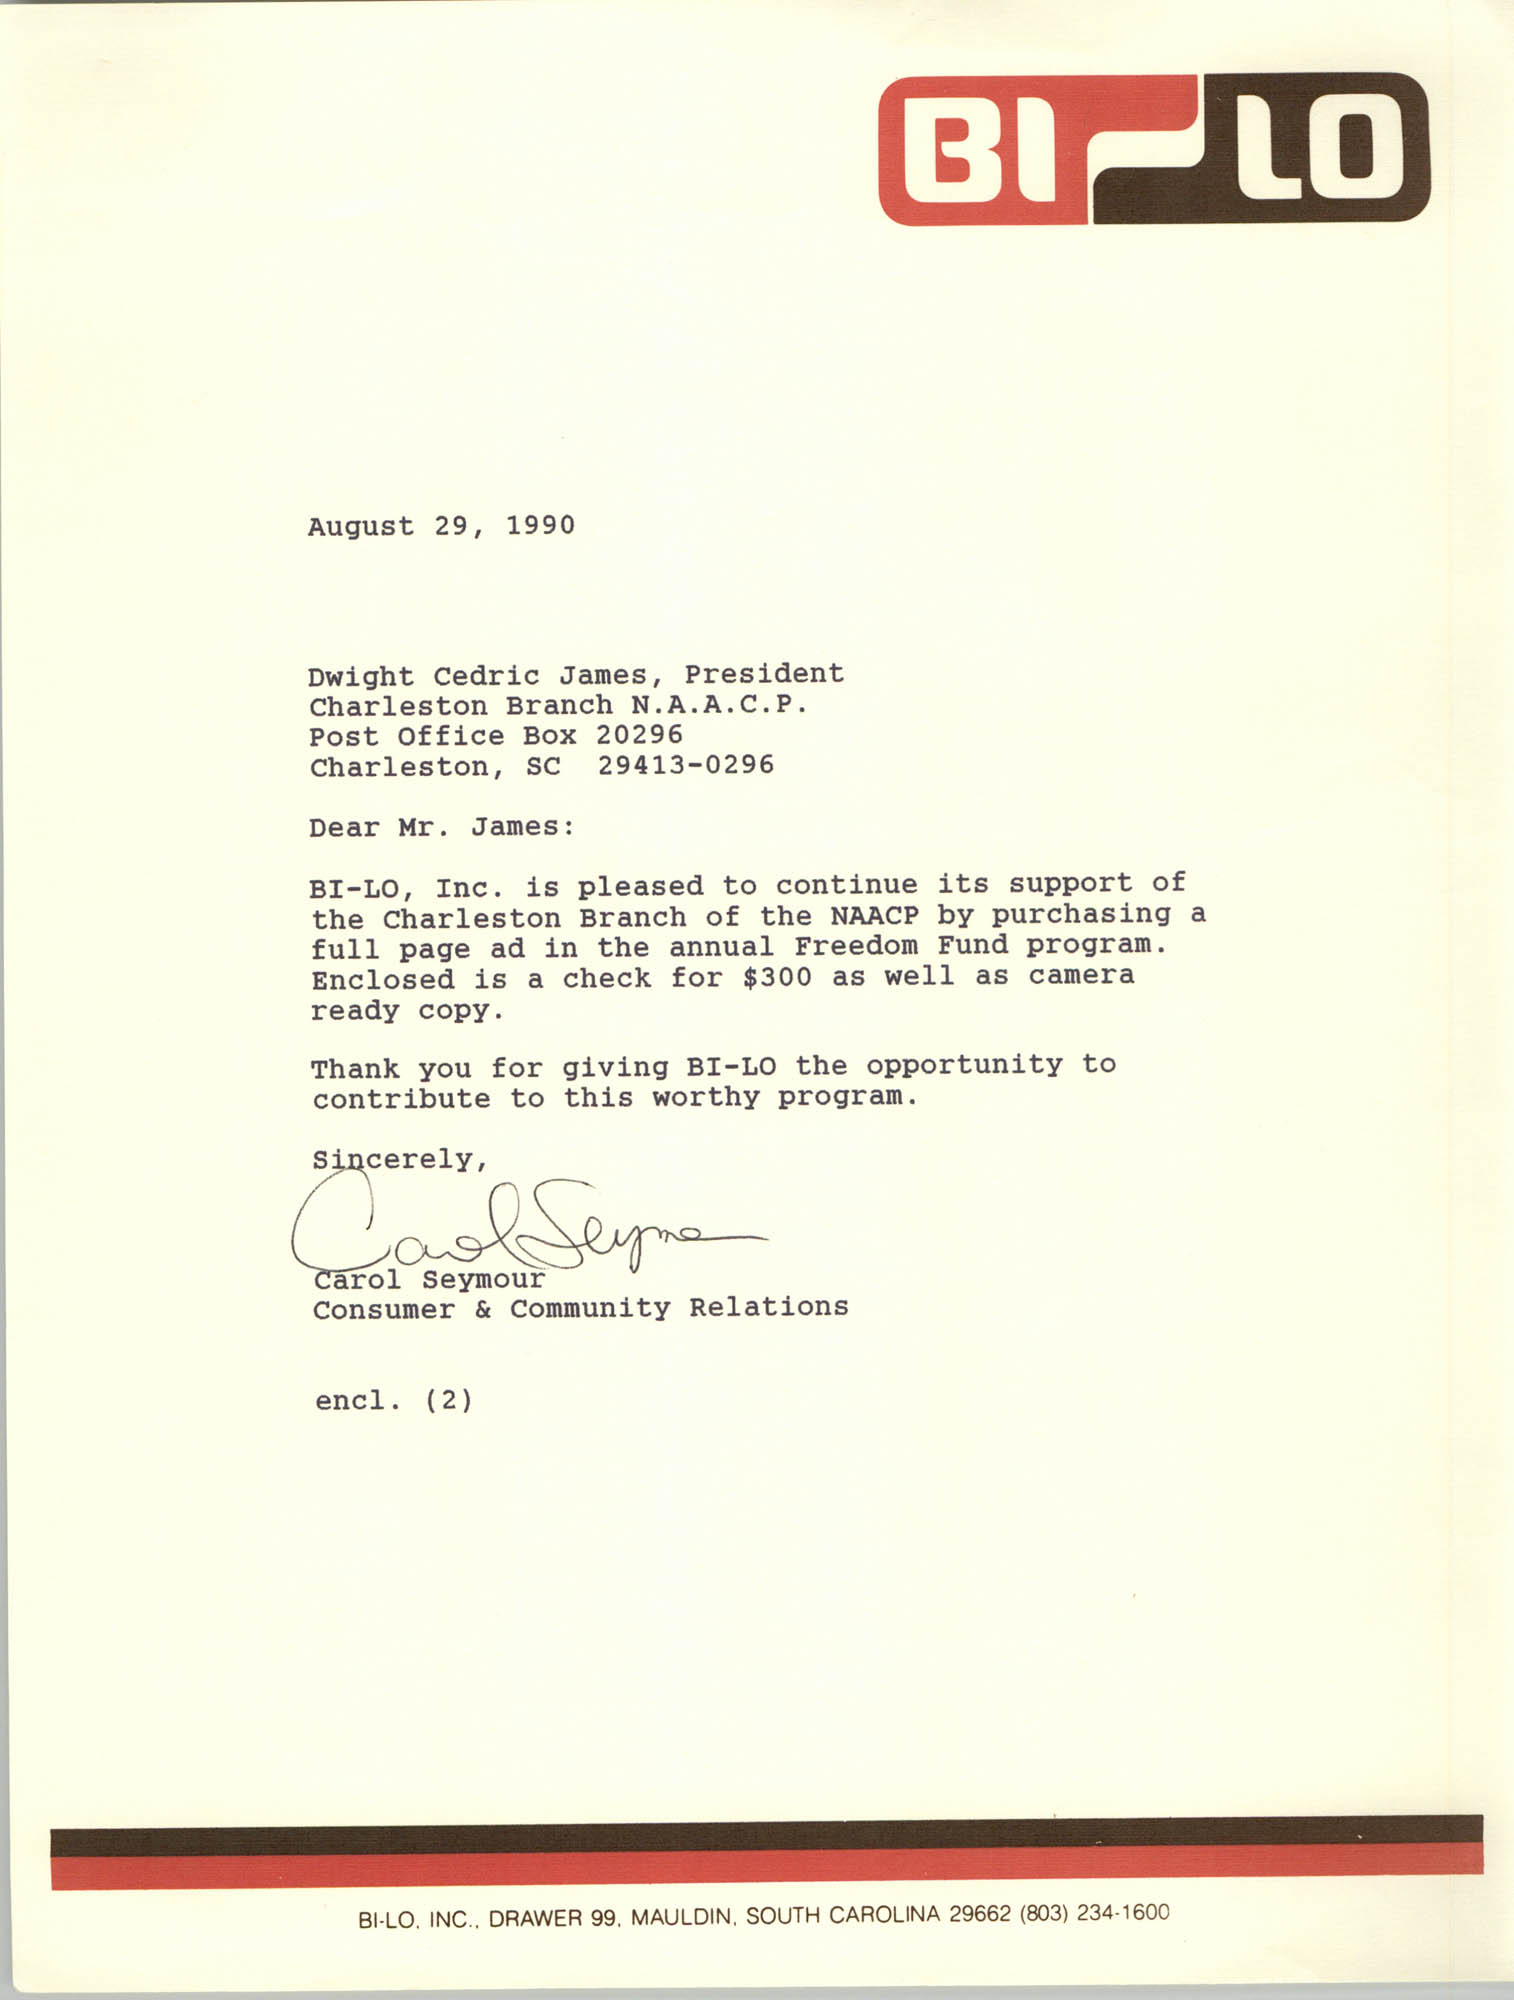 Letter from Carol Seymour to Dwight C. James, August 29, 1990